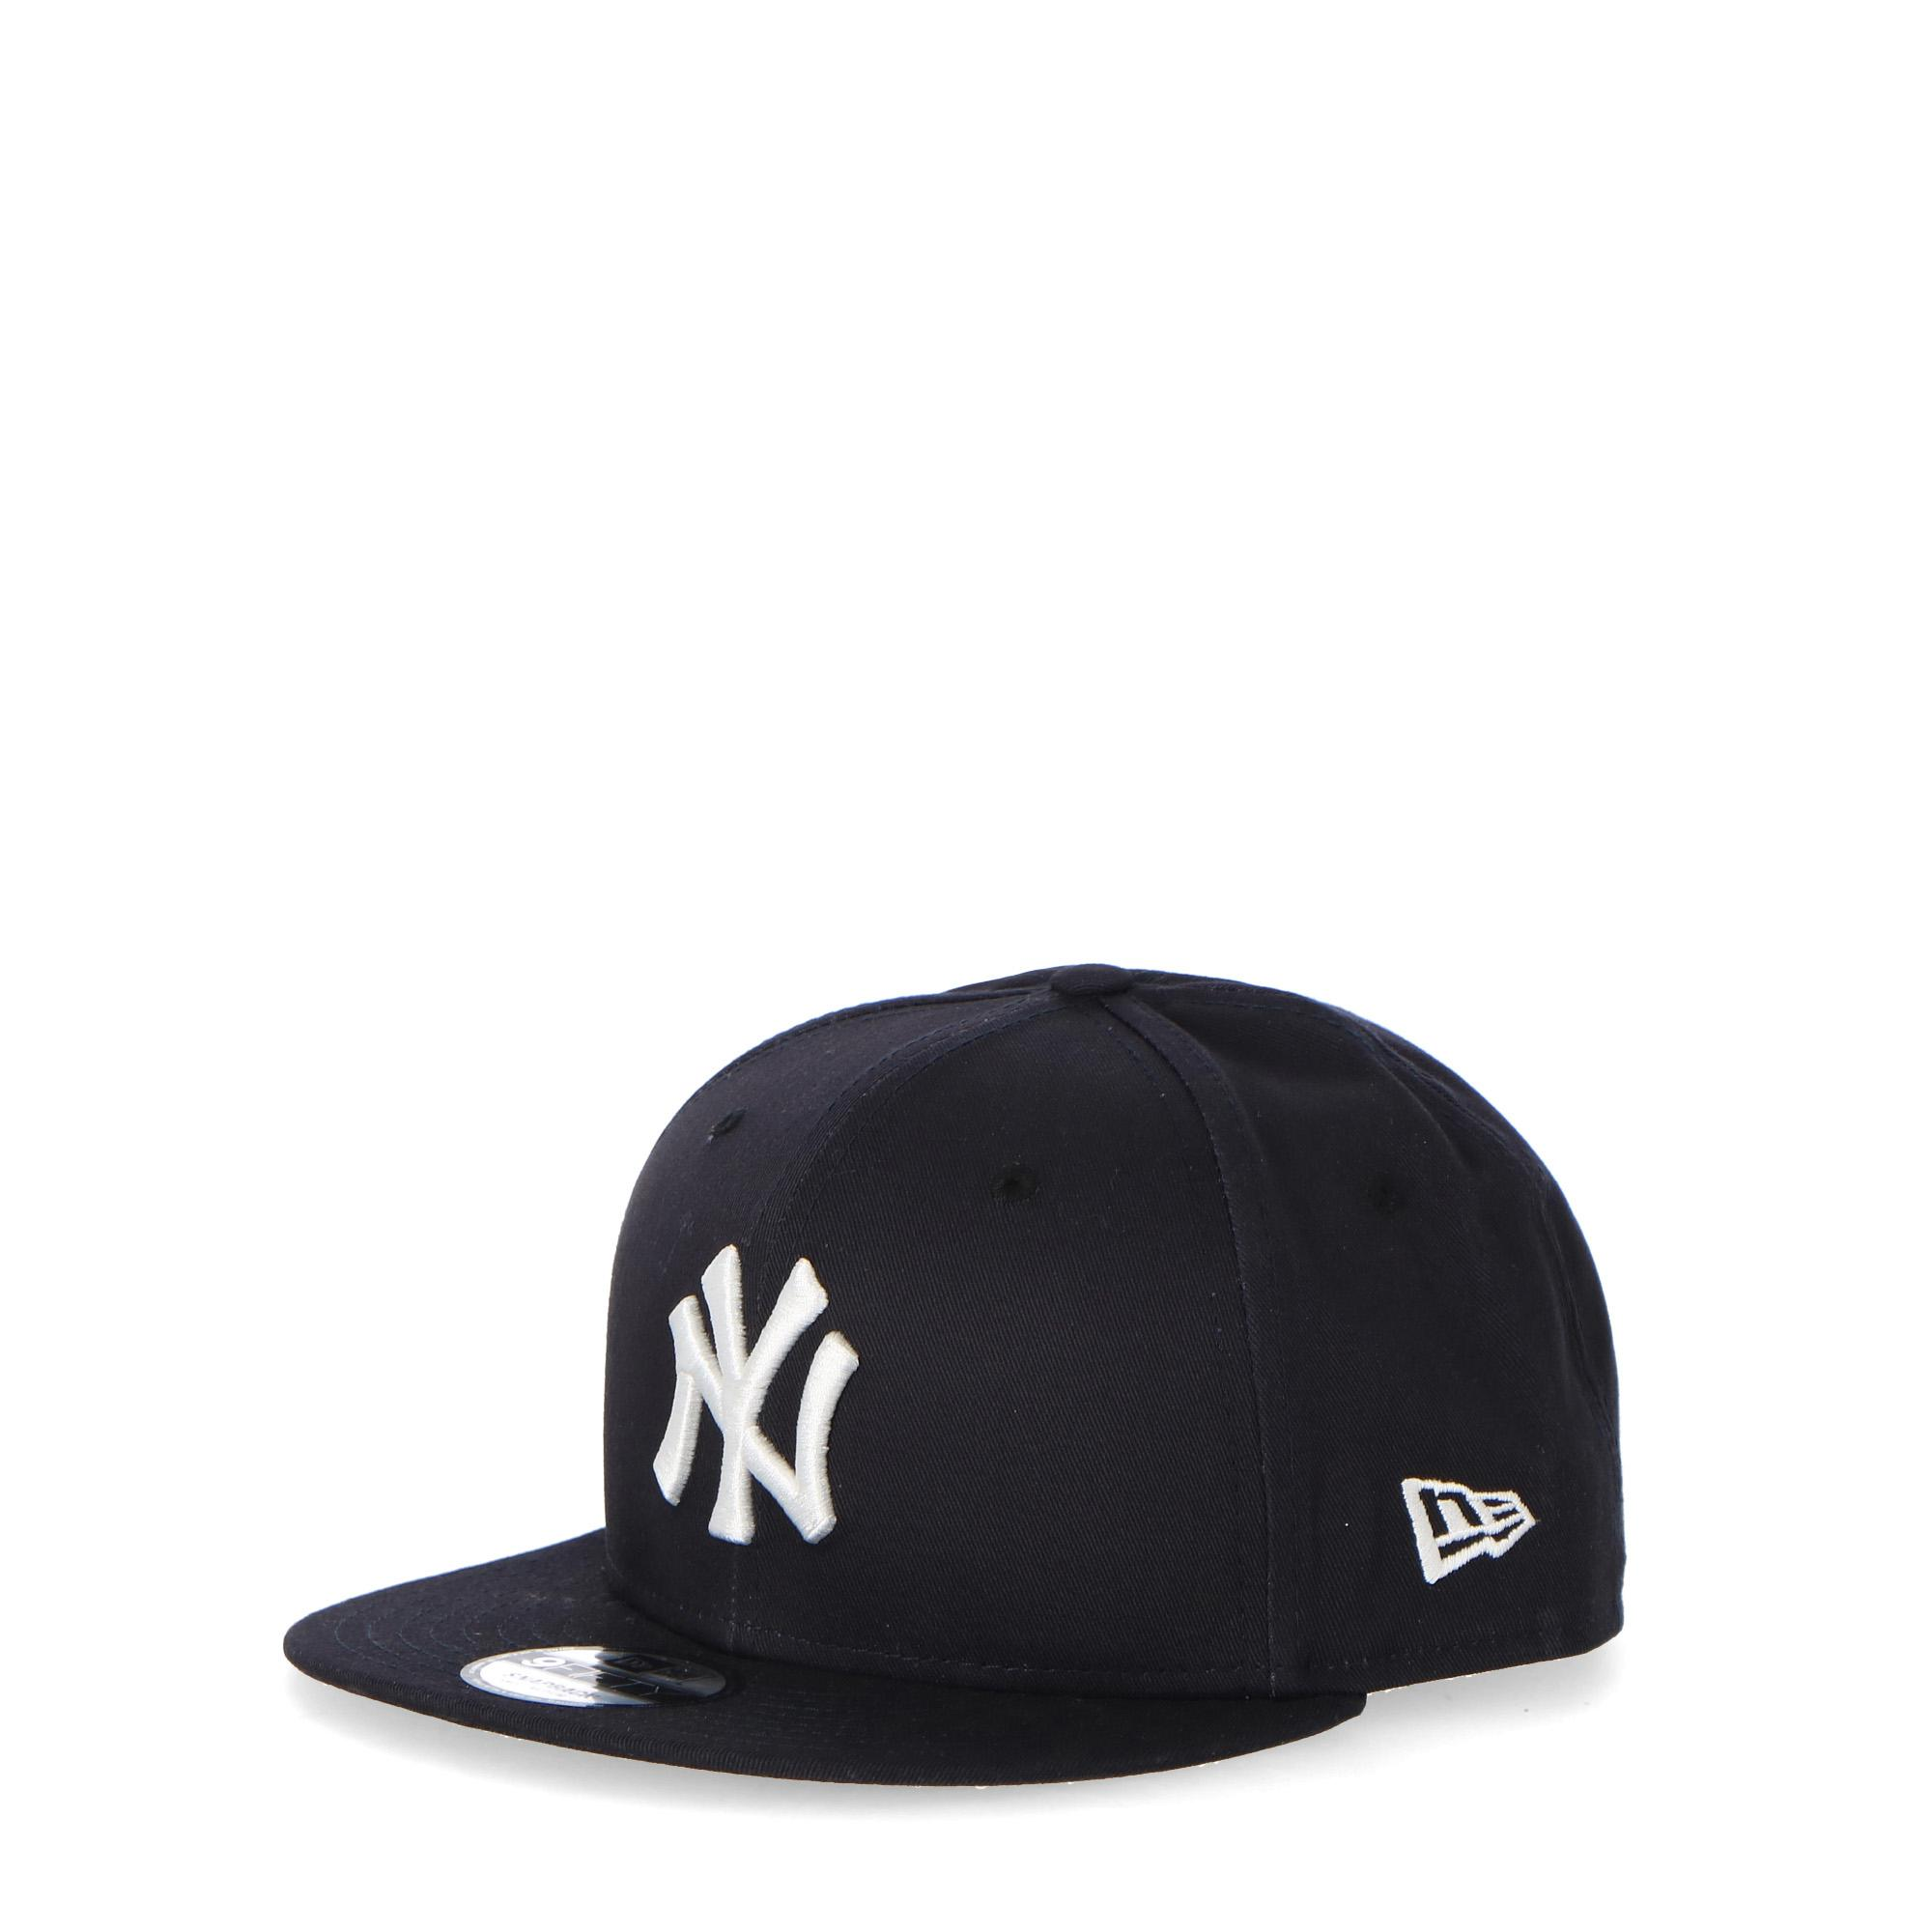 31dcb7cb8 New Era Ny Yankees Essential 9fifty<br/> New York Yankees | Treesse